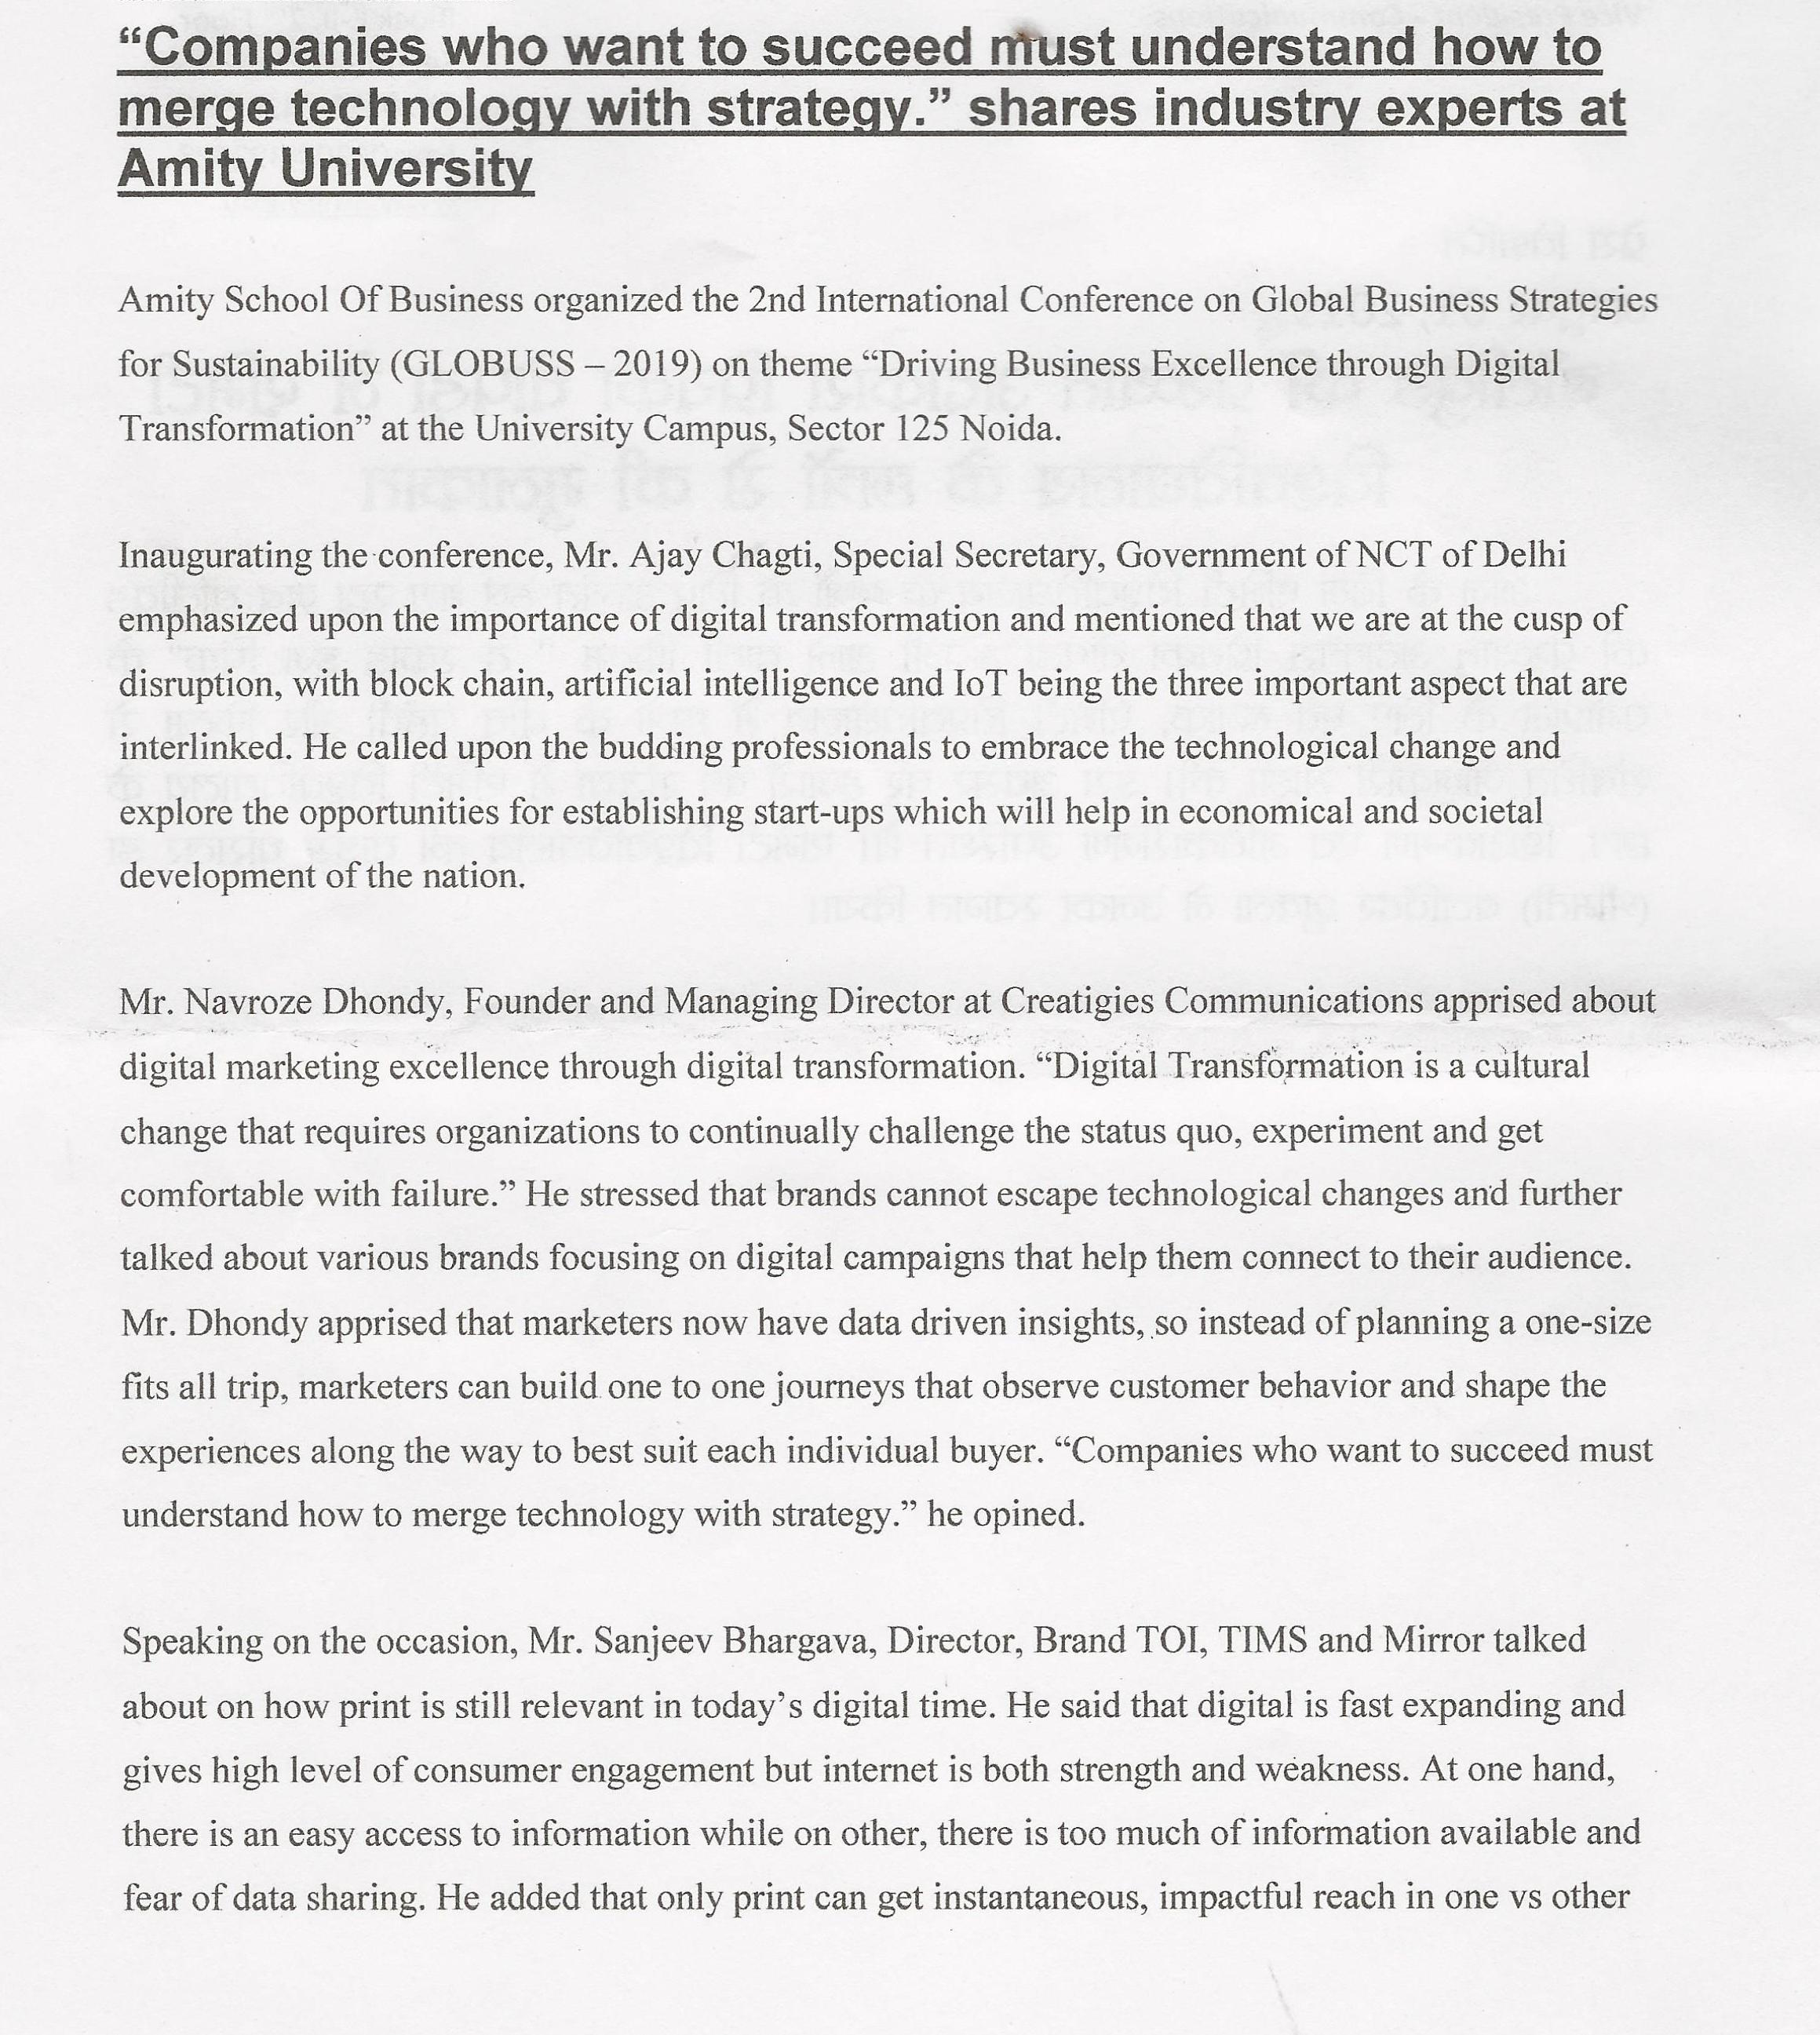 Amity School Of Business organizes 2nd International Conference GLOBUSS 2019 - Amity Events